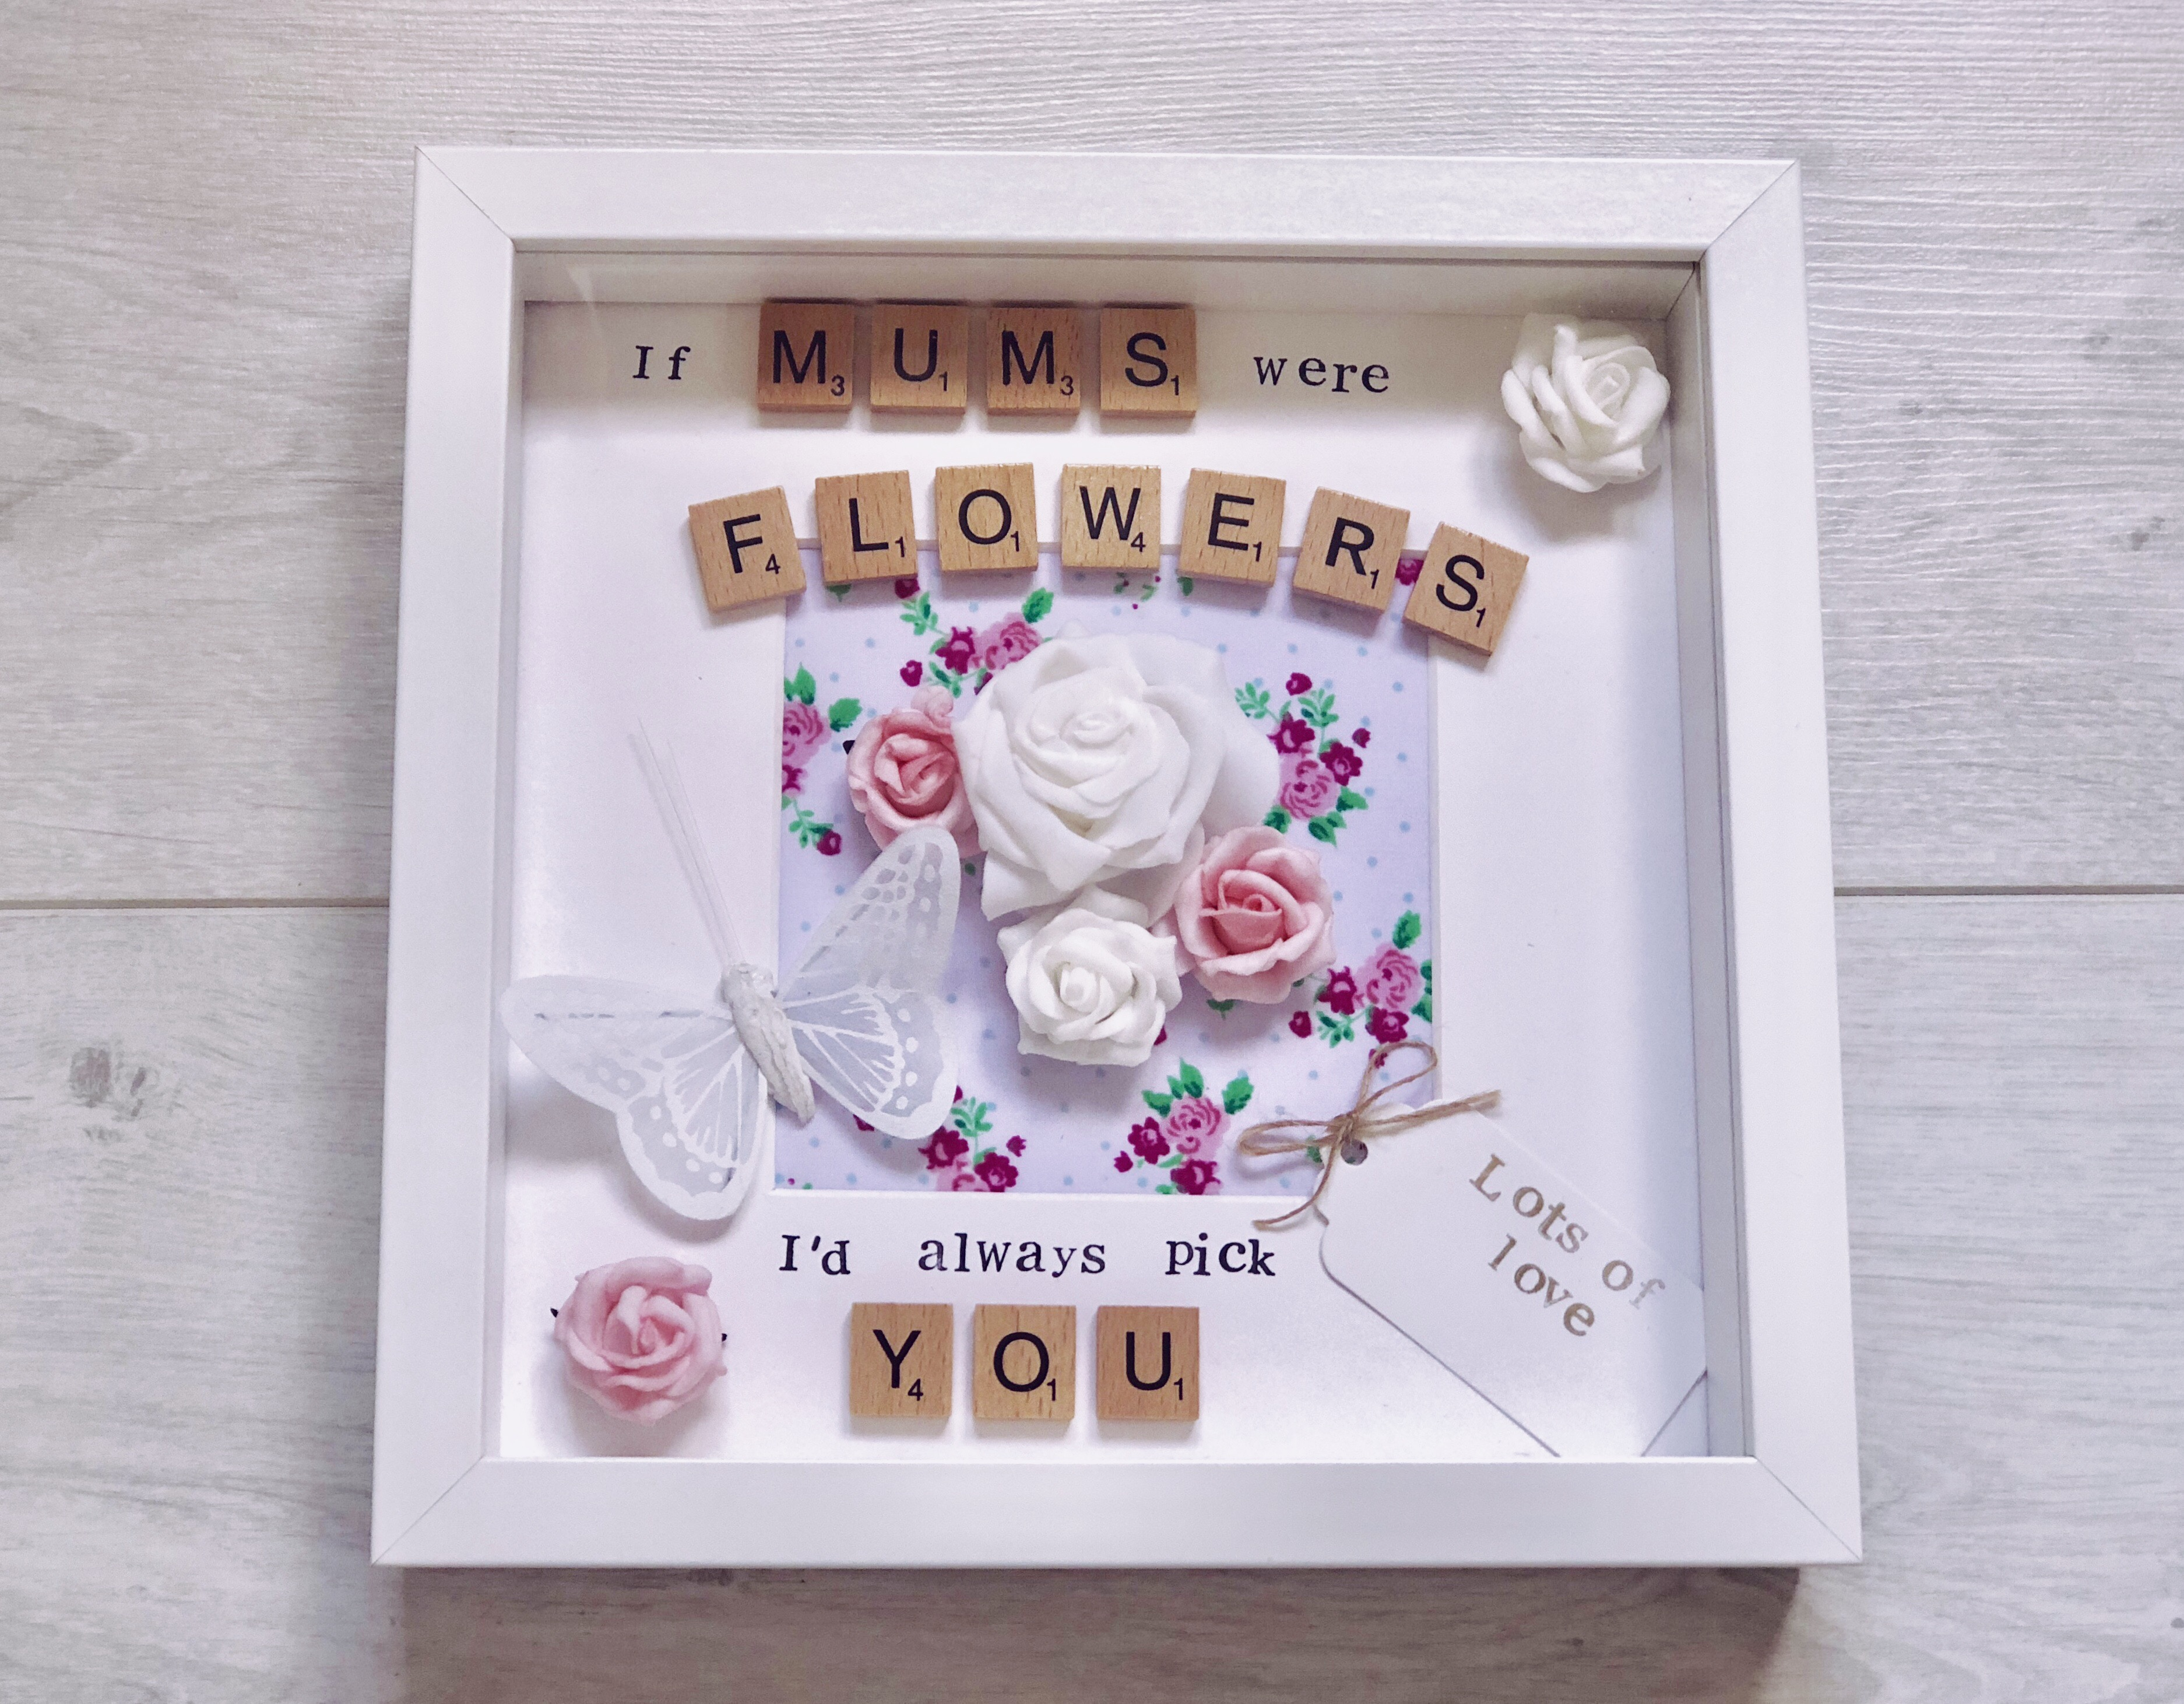 Birthday Gift For Mum If Mums Were Flowers Keepsake Frame Personalised Gifts Mothers Ideas